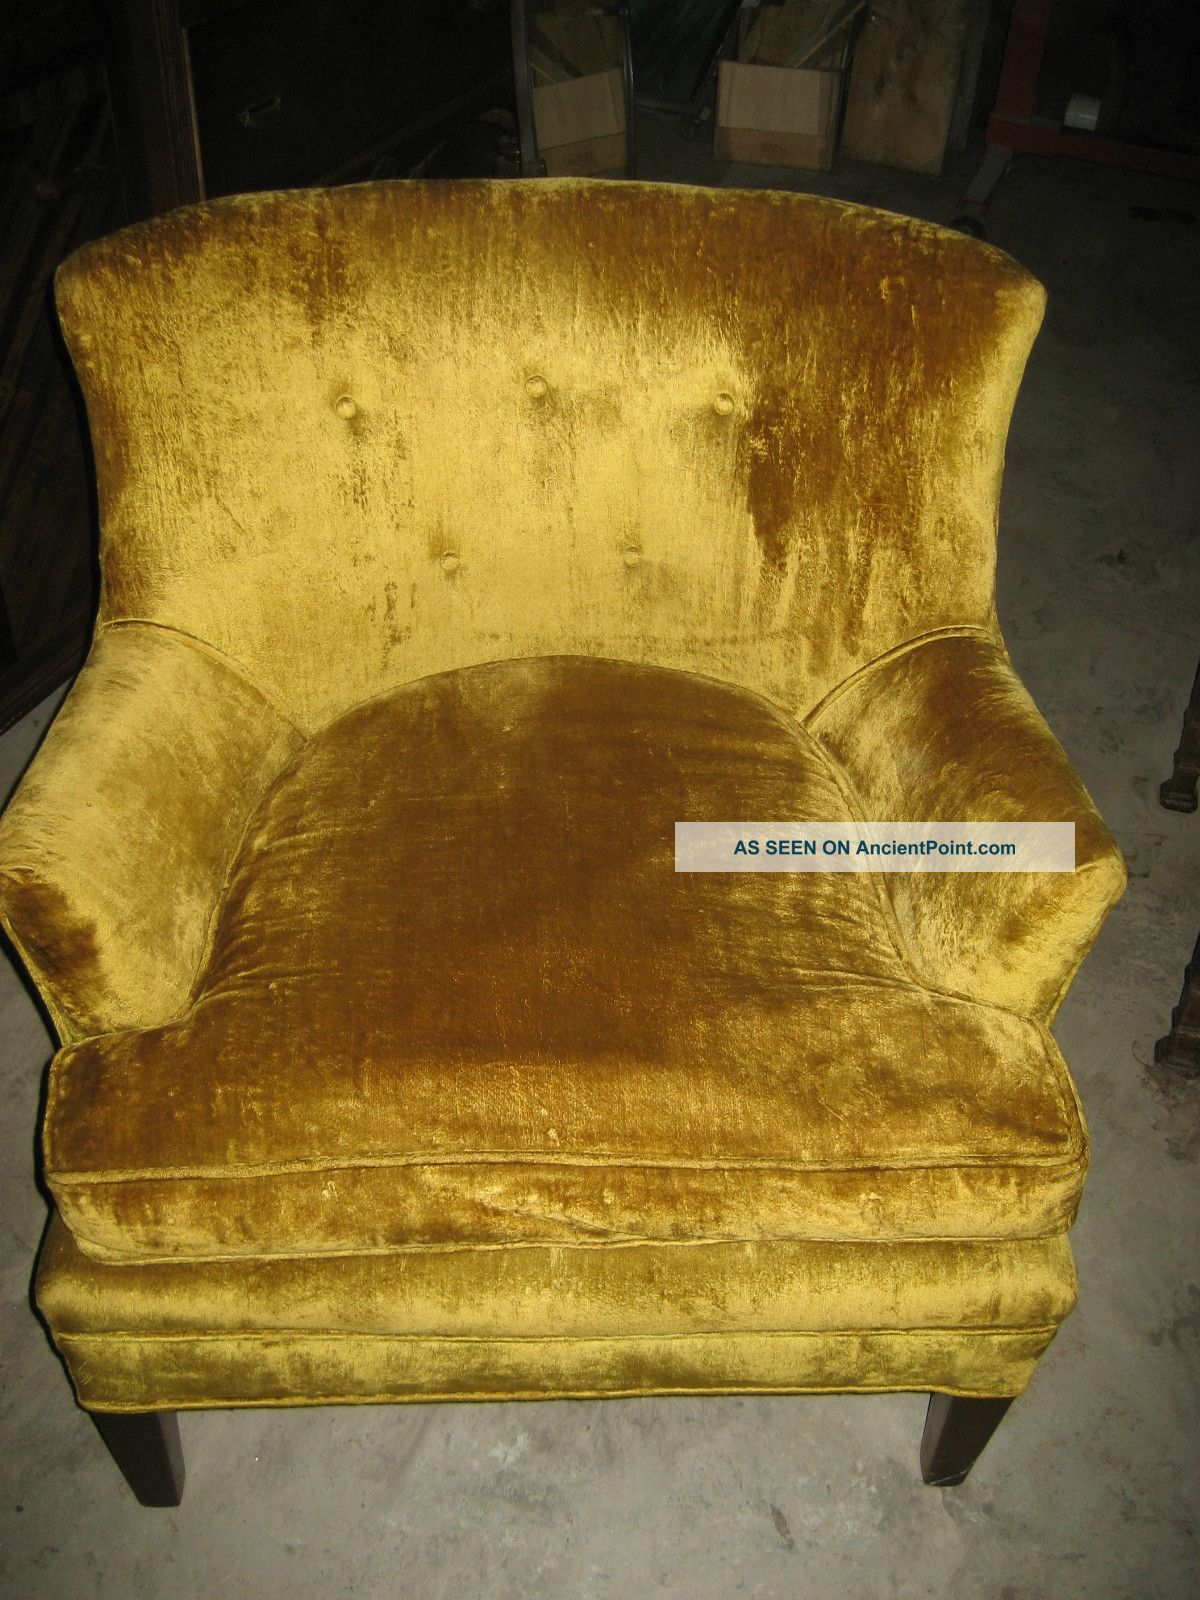 Vintage Mid Century Hollwood Regency Yellow Gold Velvet Arm Chair Art Deco - Nr Post-1950 photo